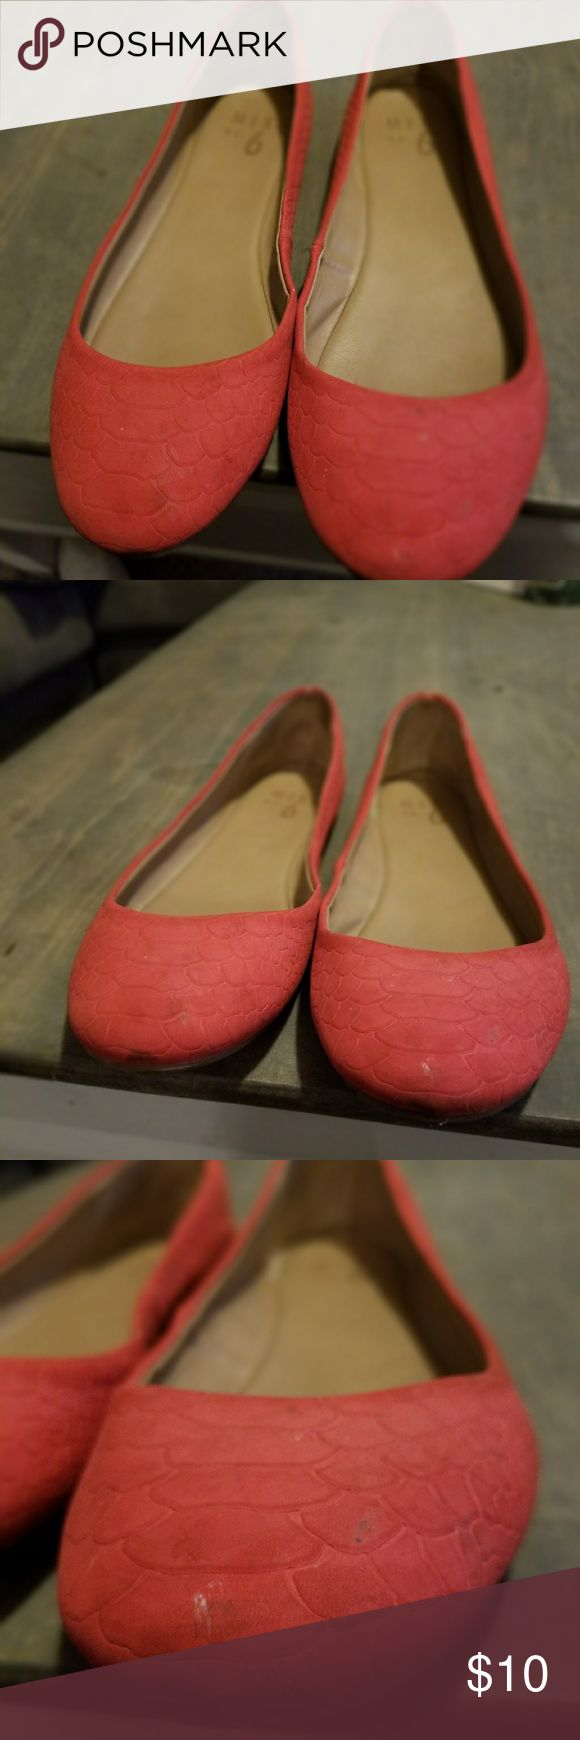 Red/coral flats Only worn a few times. Mix No. 6 Shoes Flats & Loafers